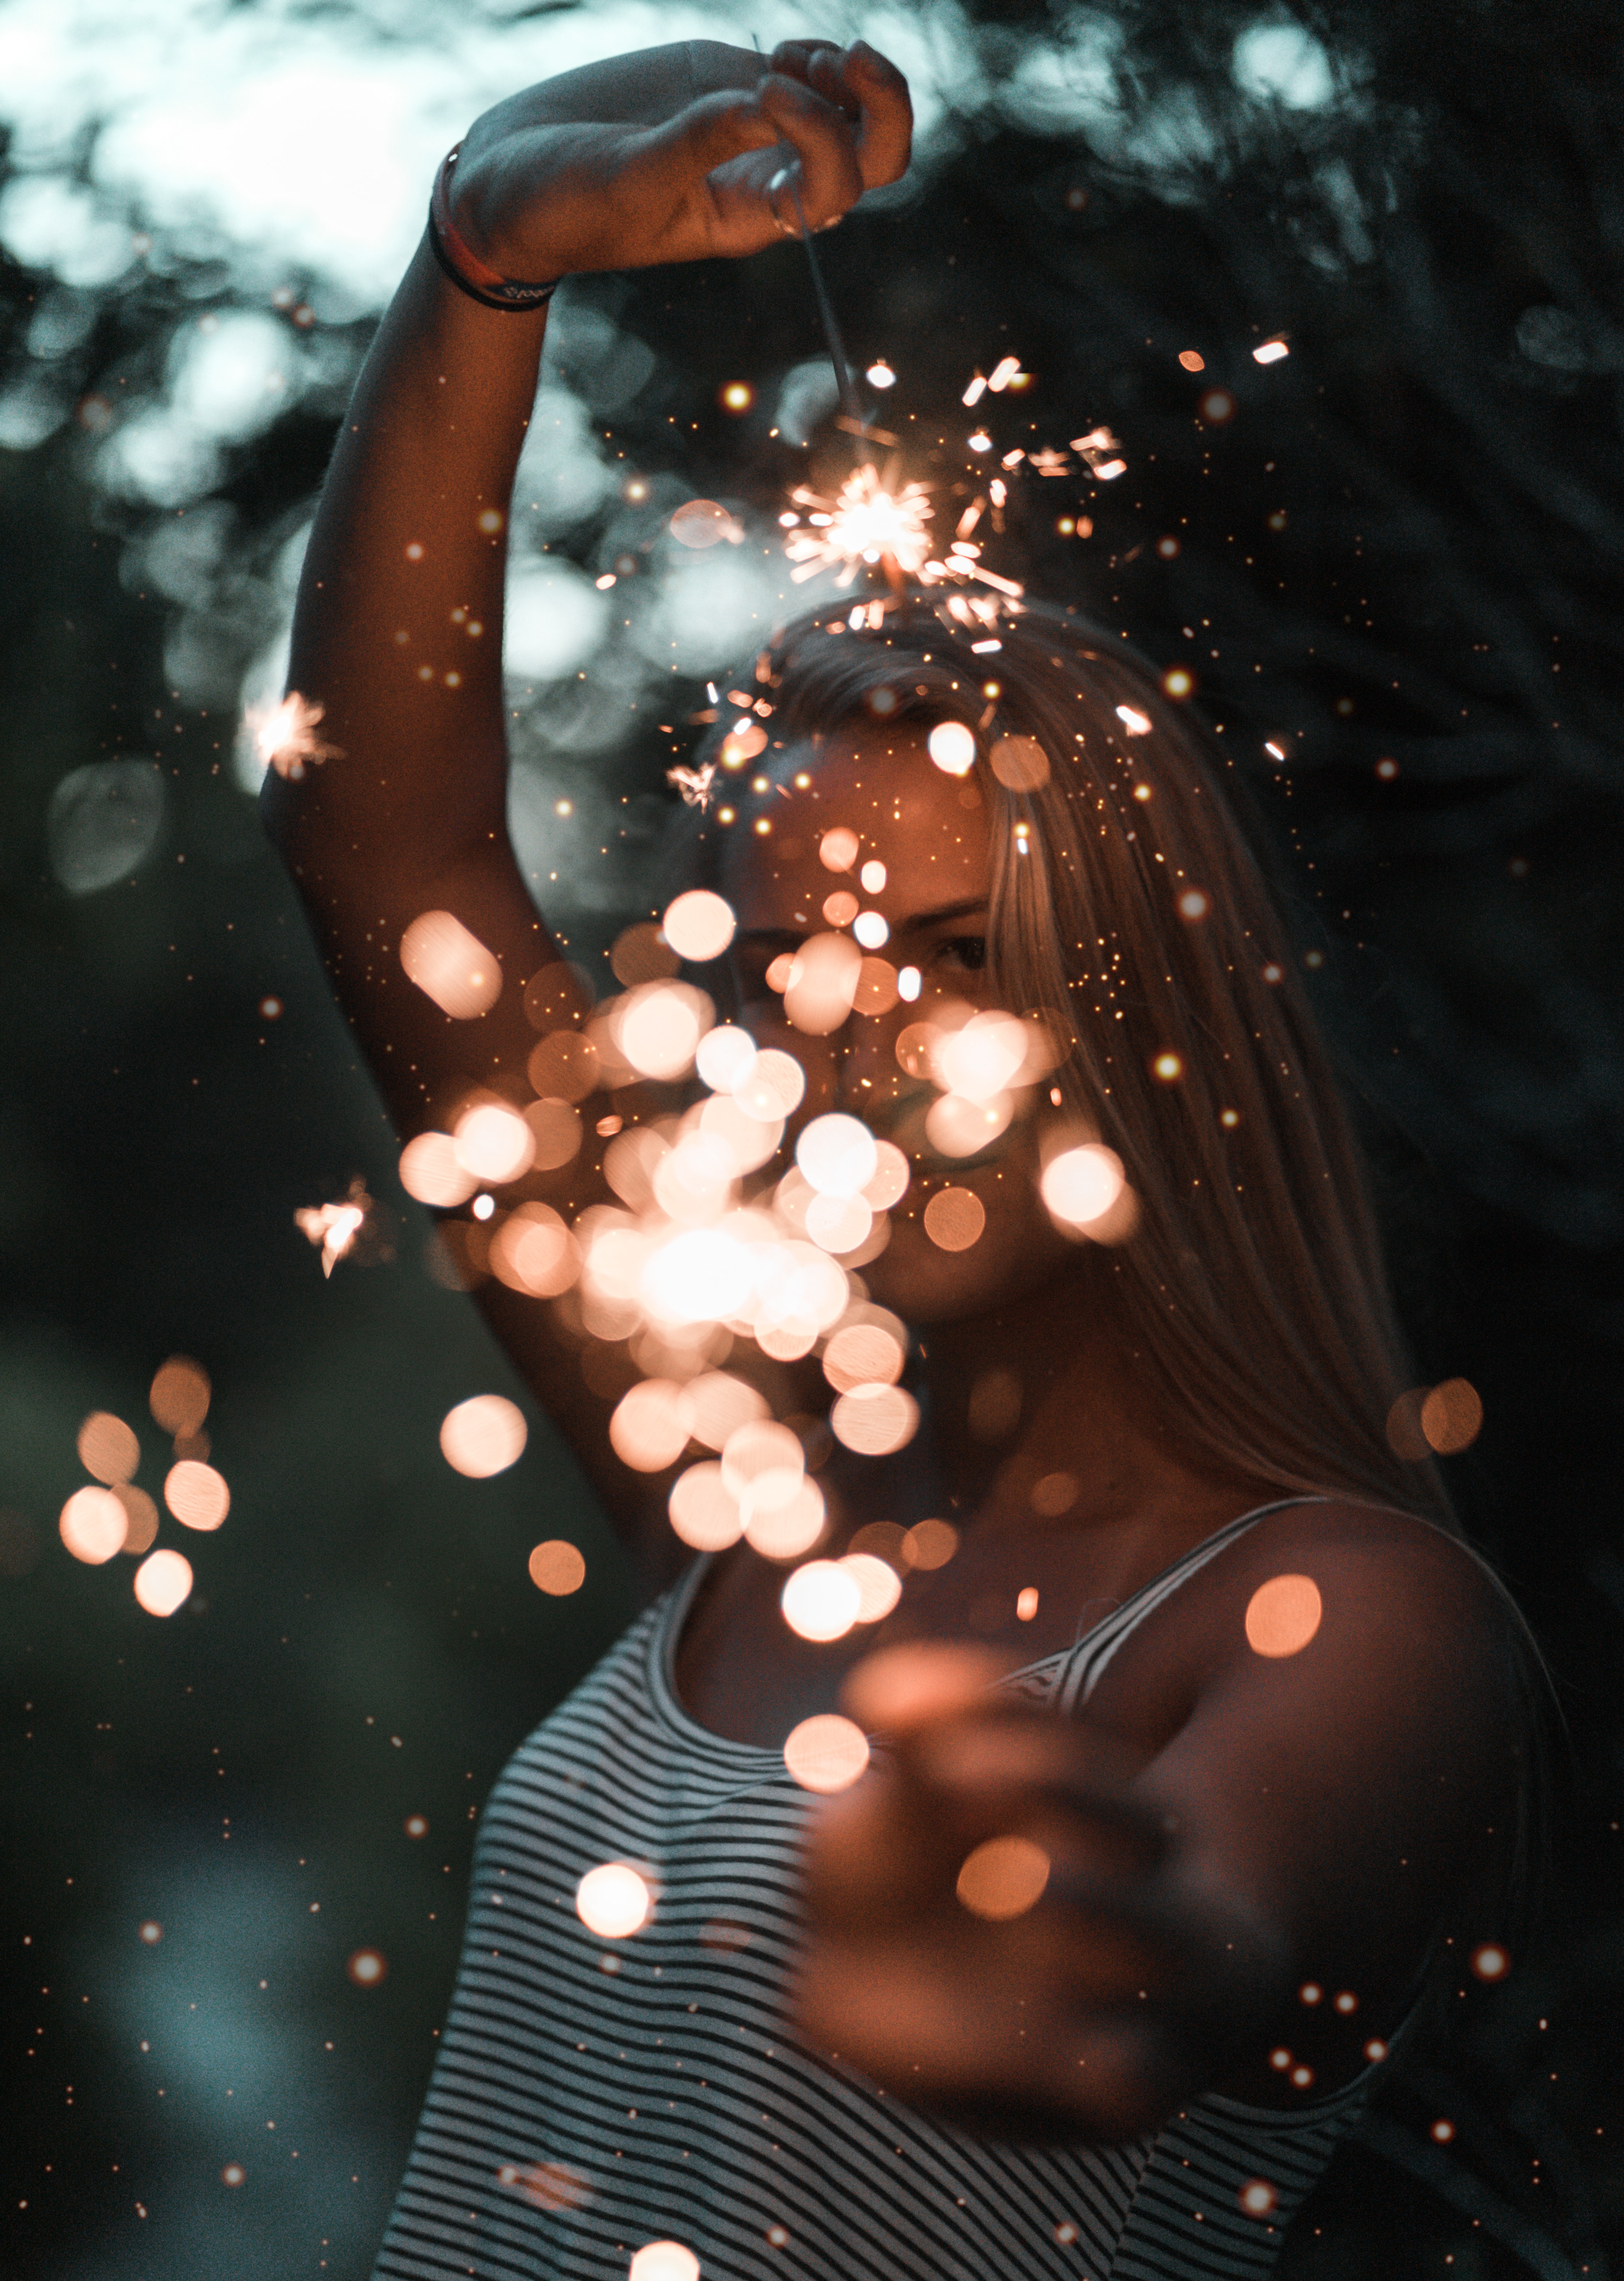 woman holding sparklers bokeh photography